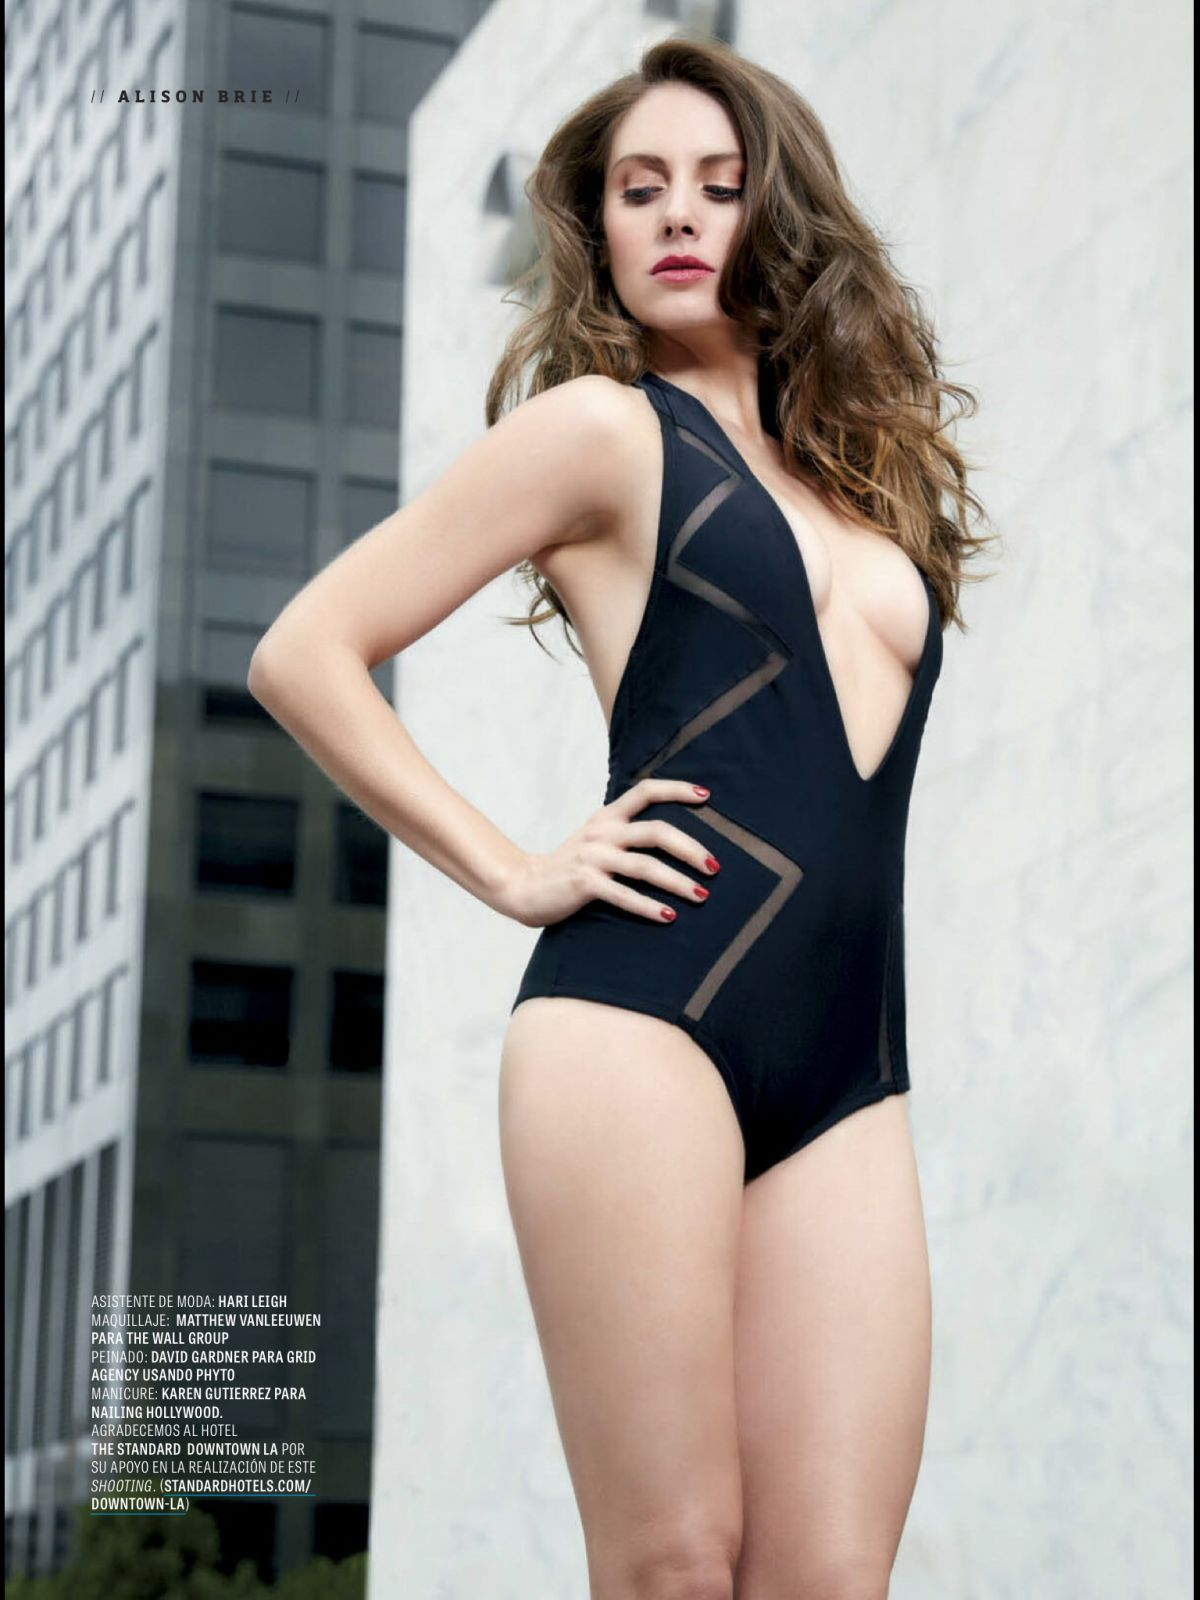 ALISON BRIE in GQ Magazine, March 2015 Issue